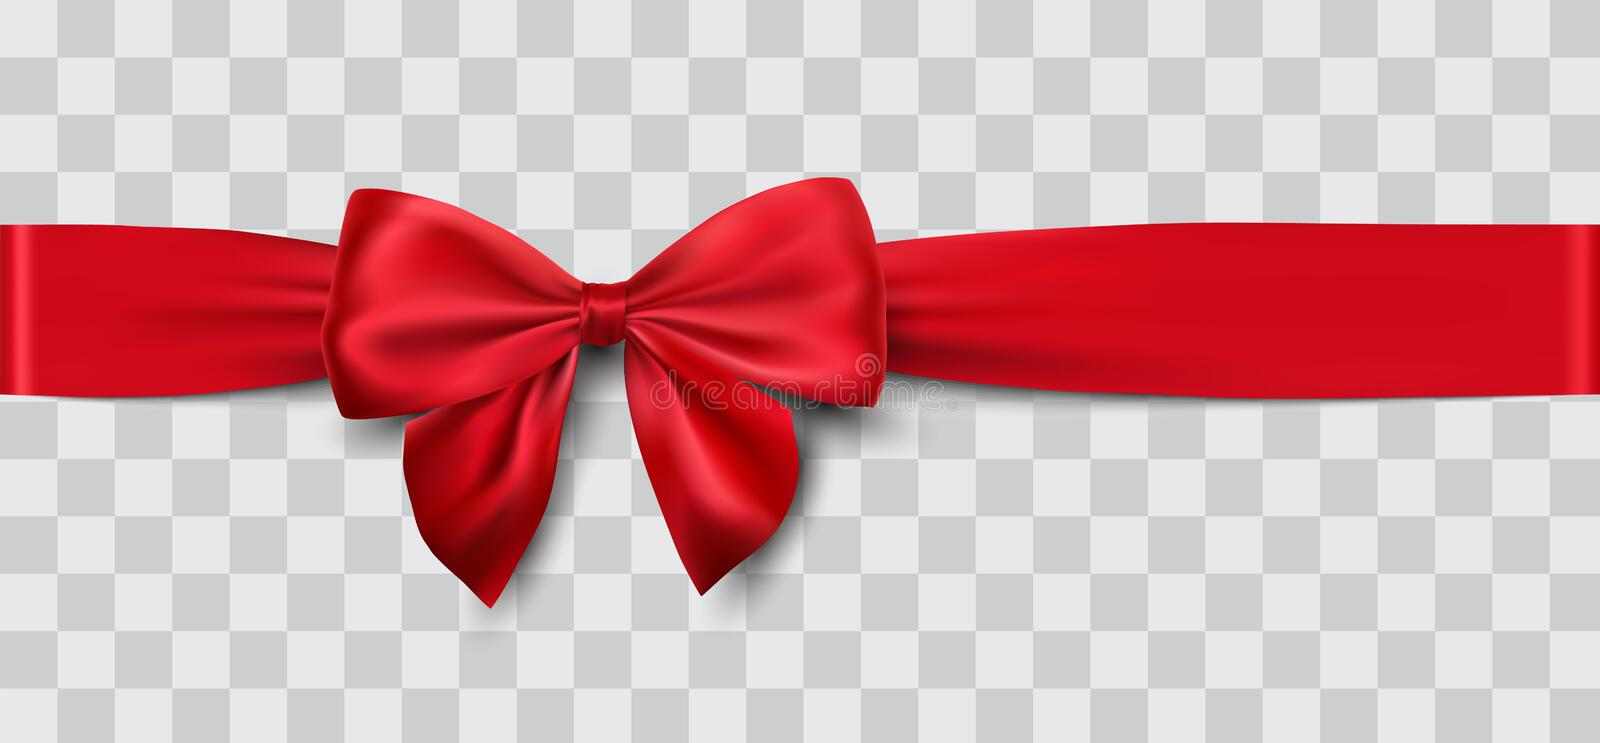 Red satin ribbon and bow vector illustration